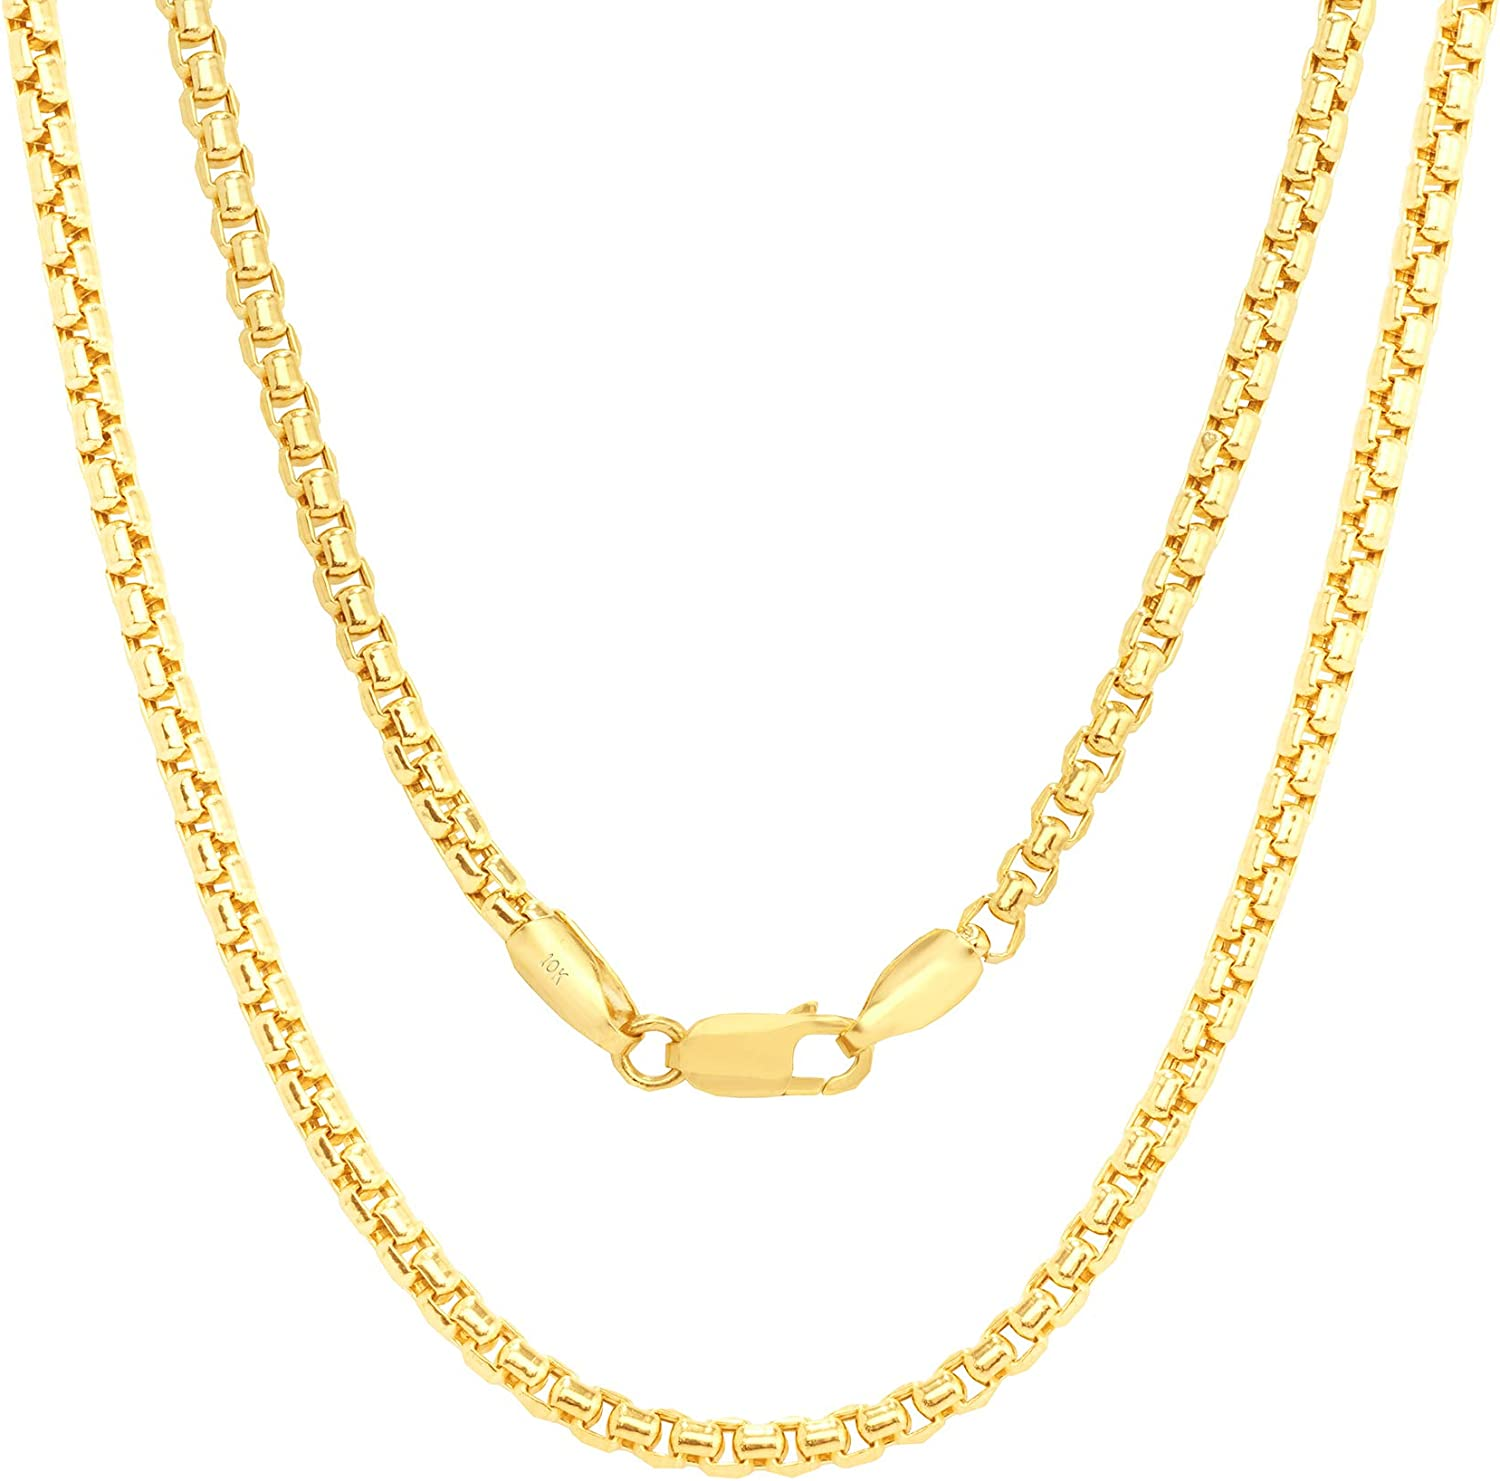 Nuragold 10k Yellow Gold 2.5mm Round Box Chain Venetian Link Pendant Necklace, Mens Womens Lobster Lock 16